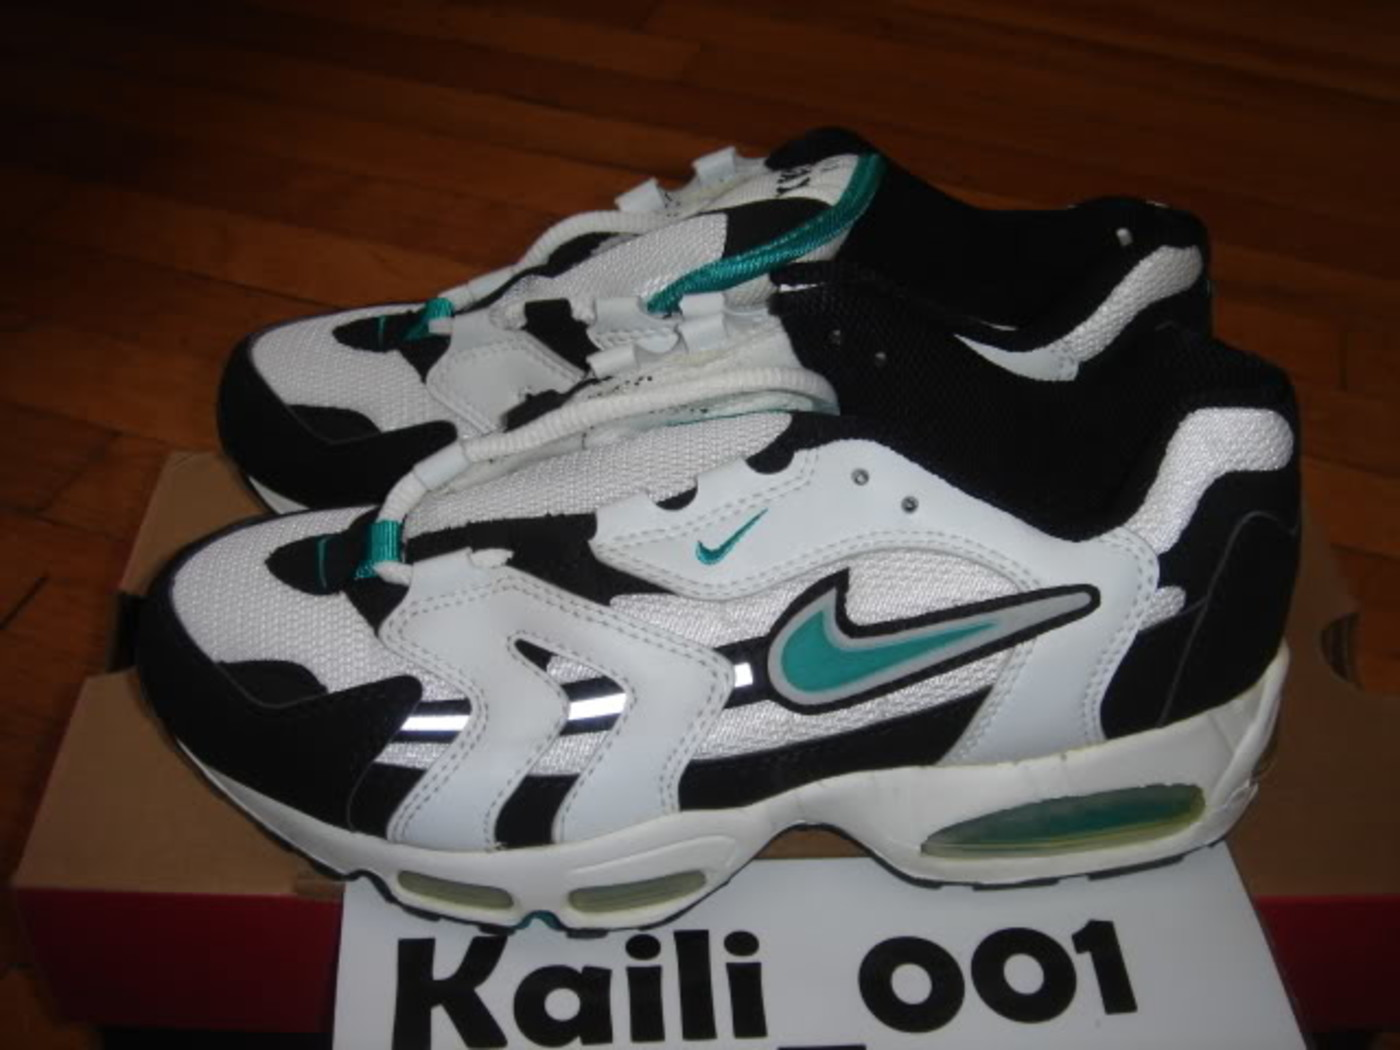 Nike Air Max Runners That Need to Be